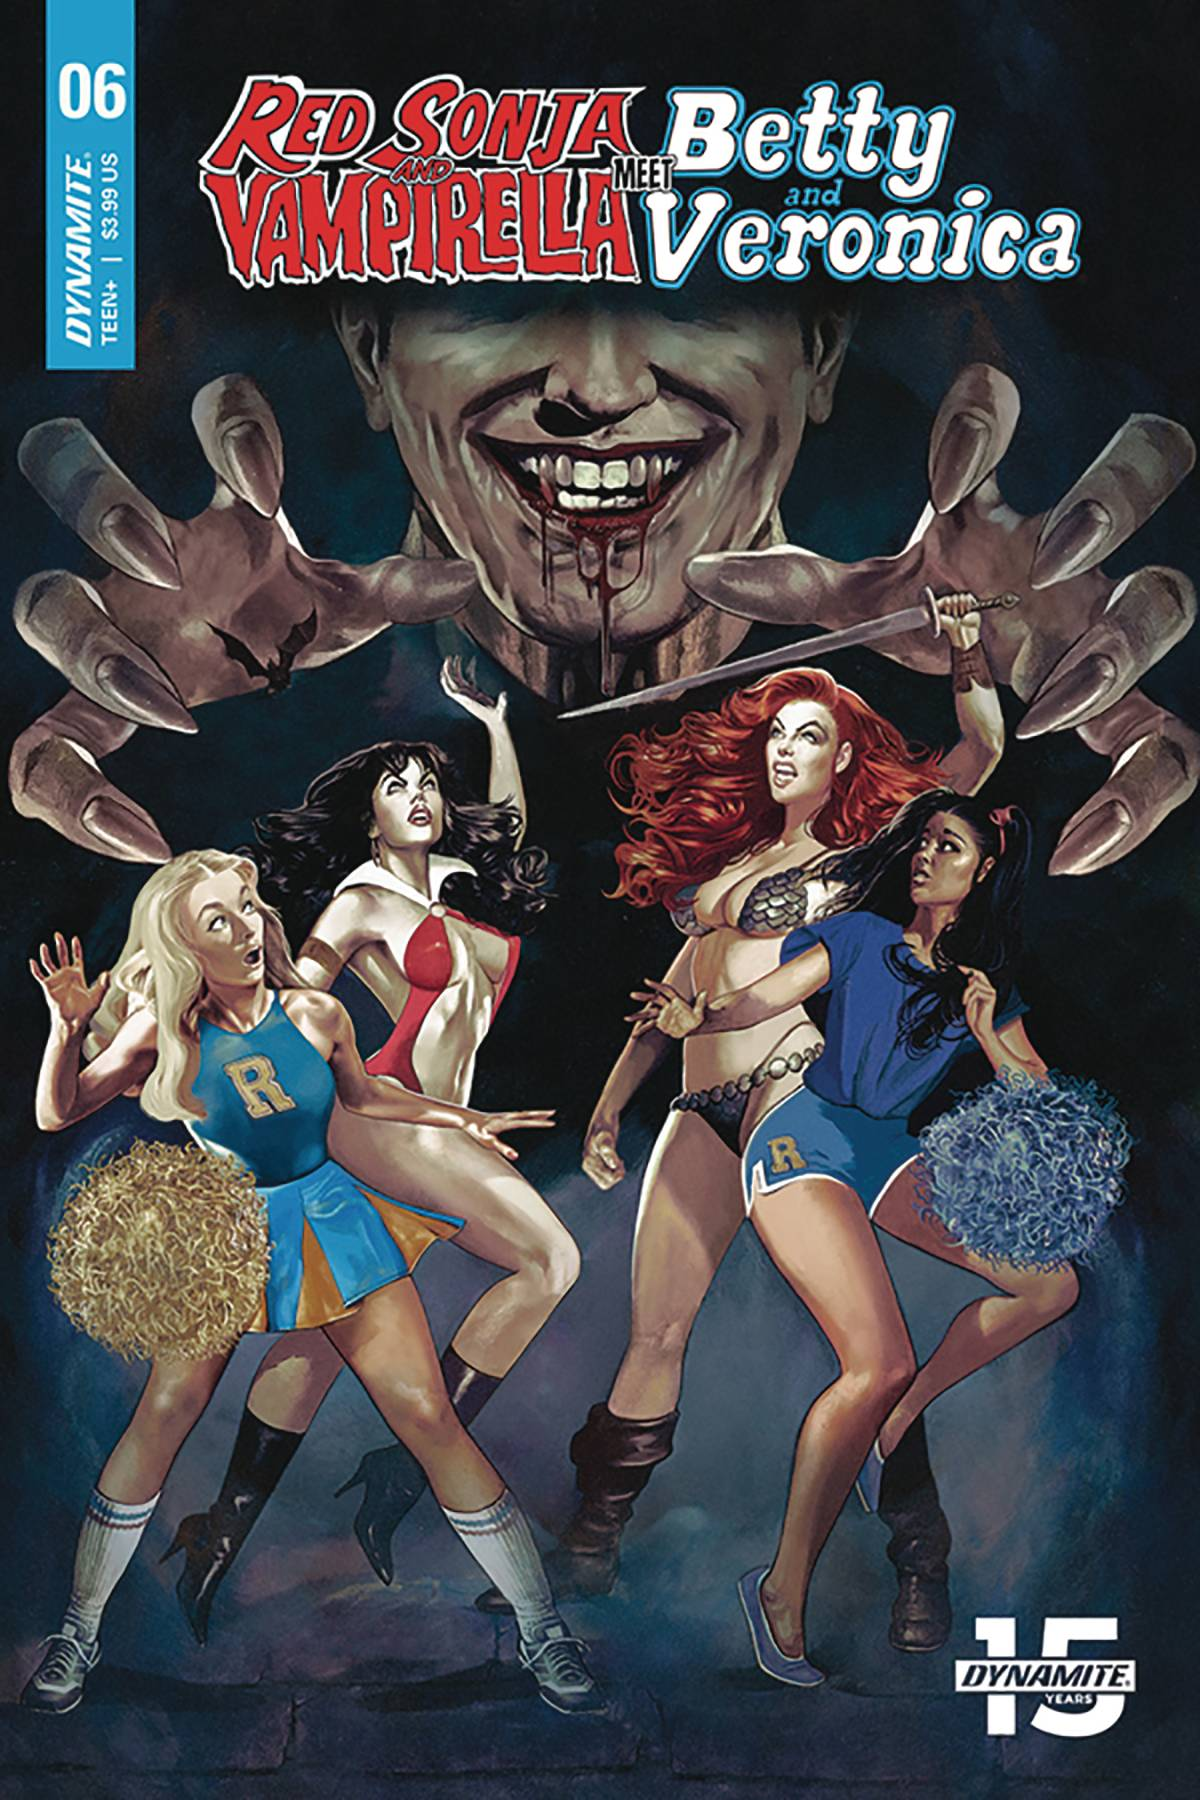 Red Sonja and Vampirella Meet Betty and Veronica  #6 Cover A